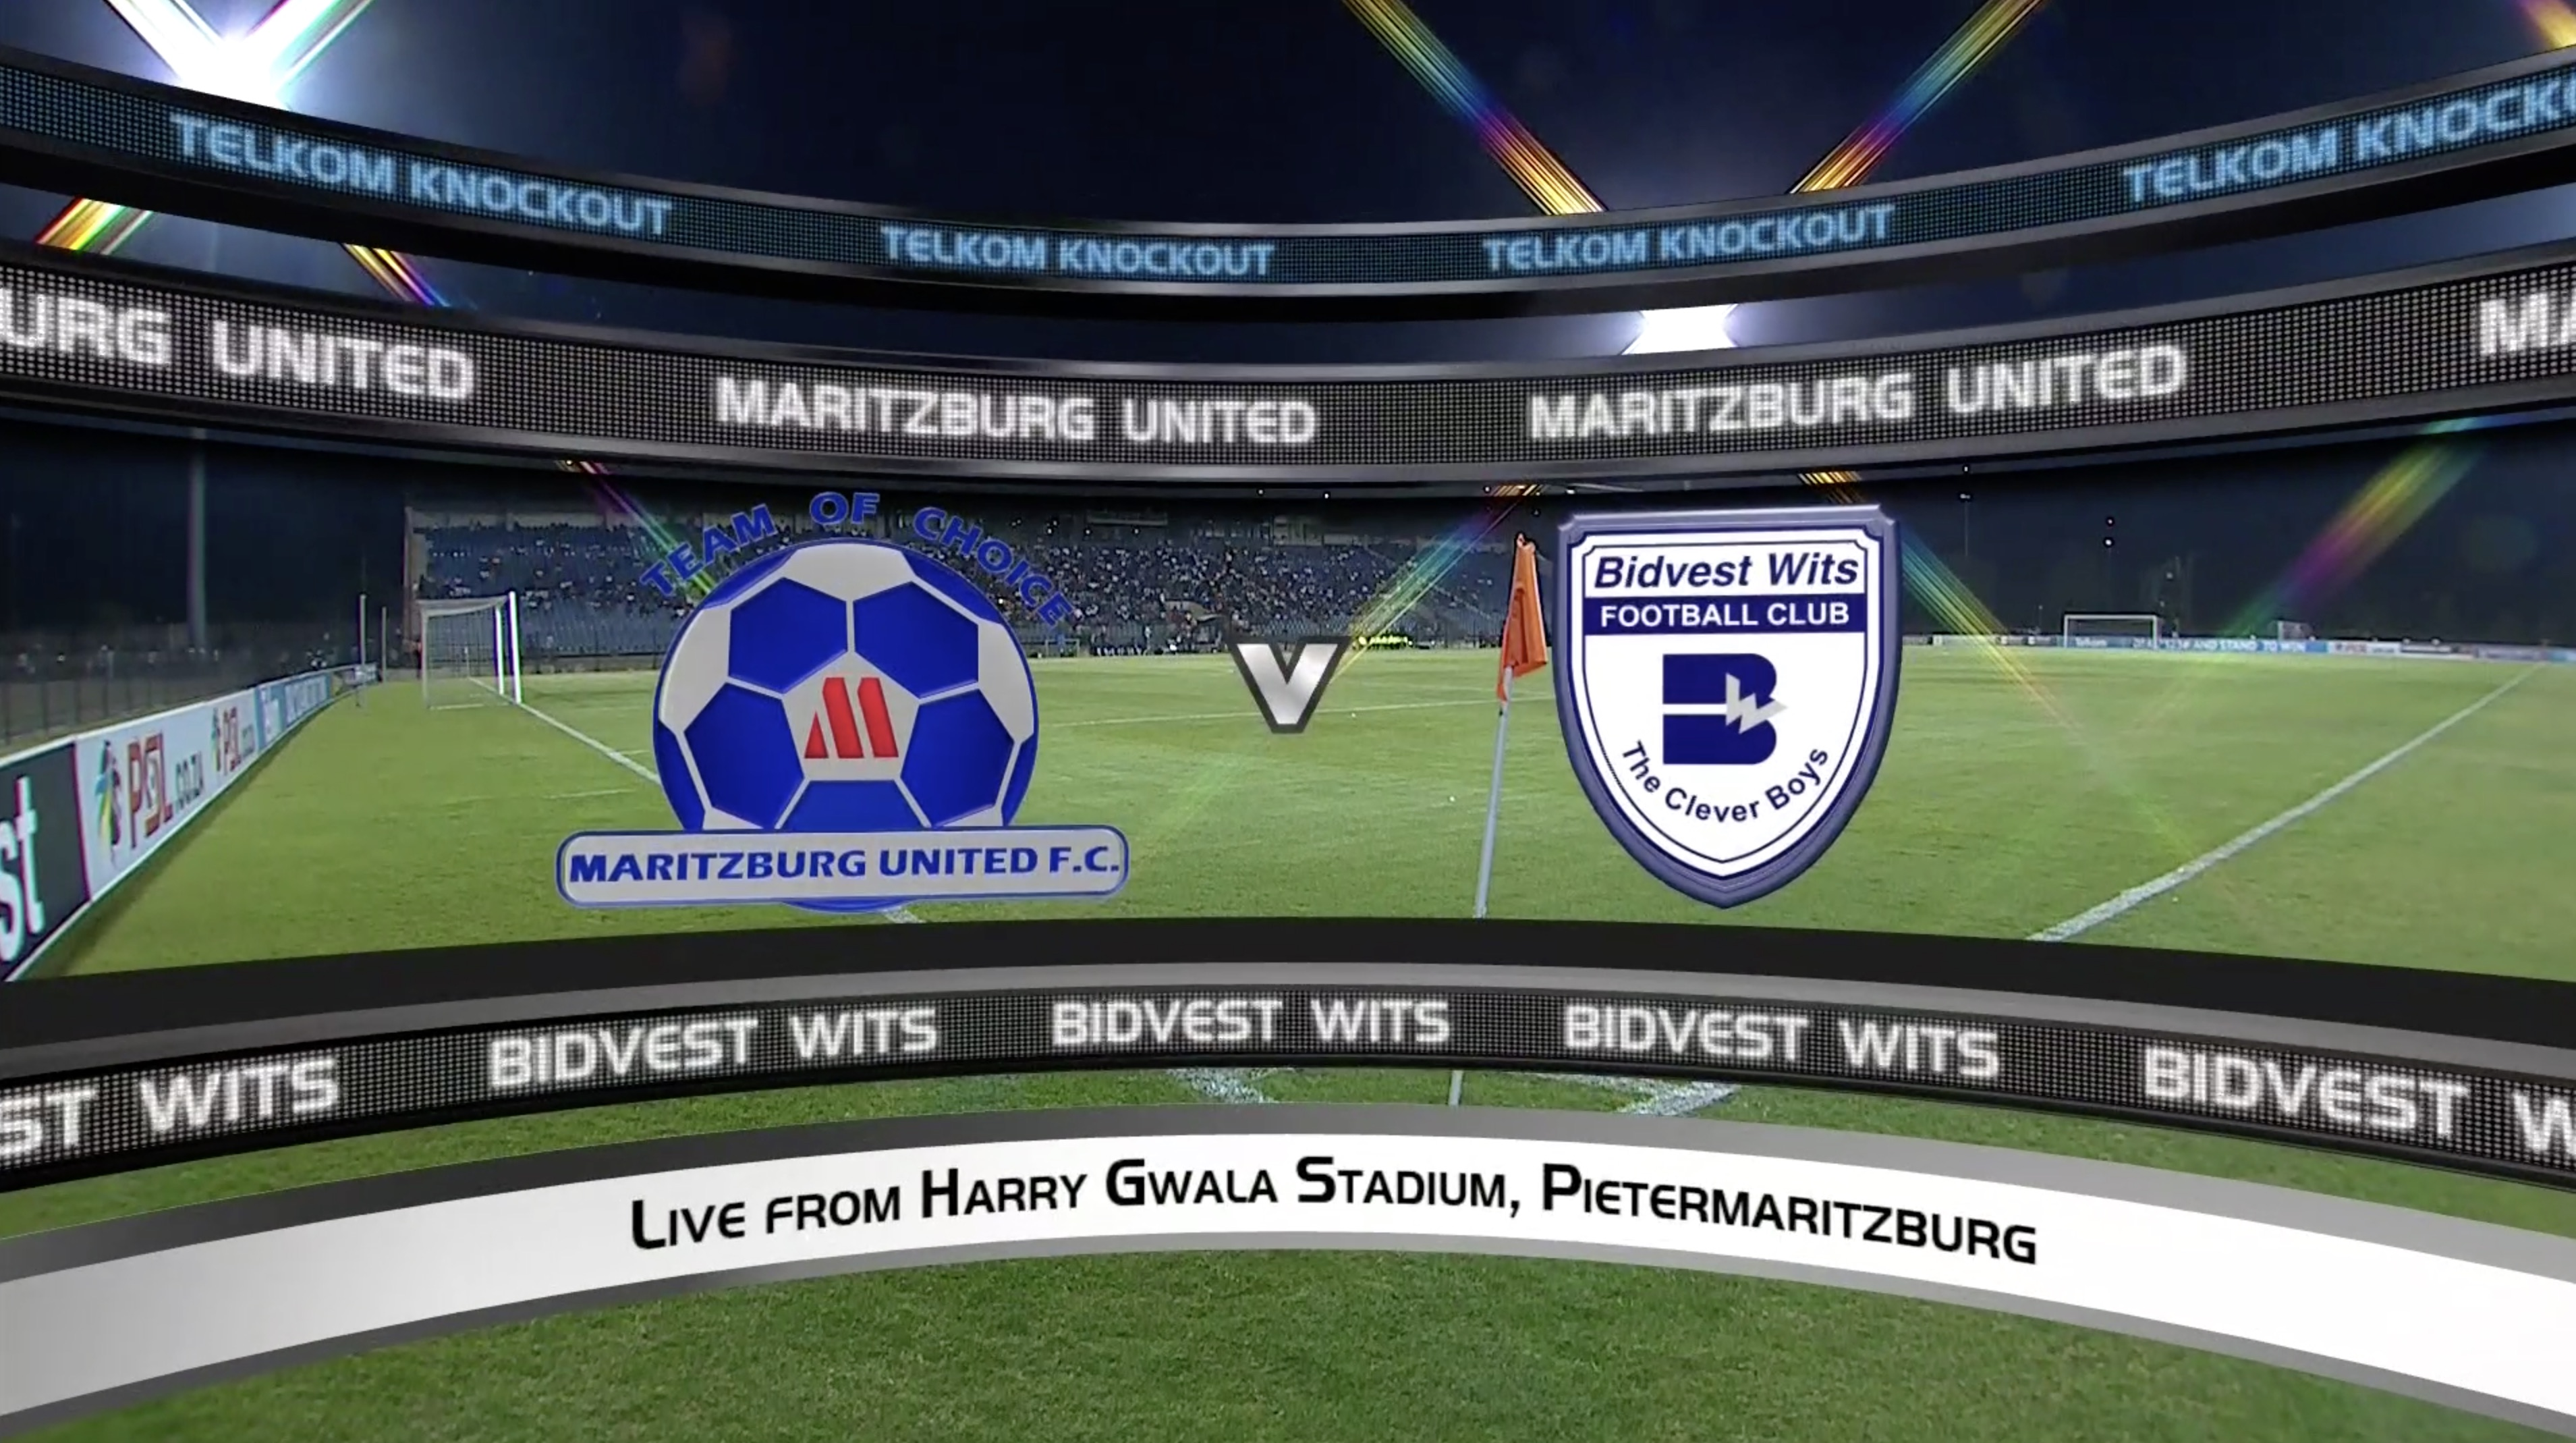 Telkom Knockout | Last 16 | Maritzburg United v Bidvest Wits | Highlights